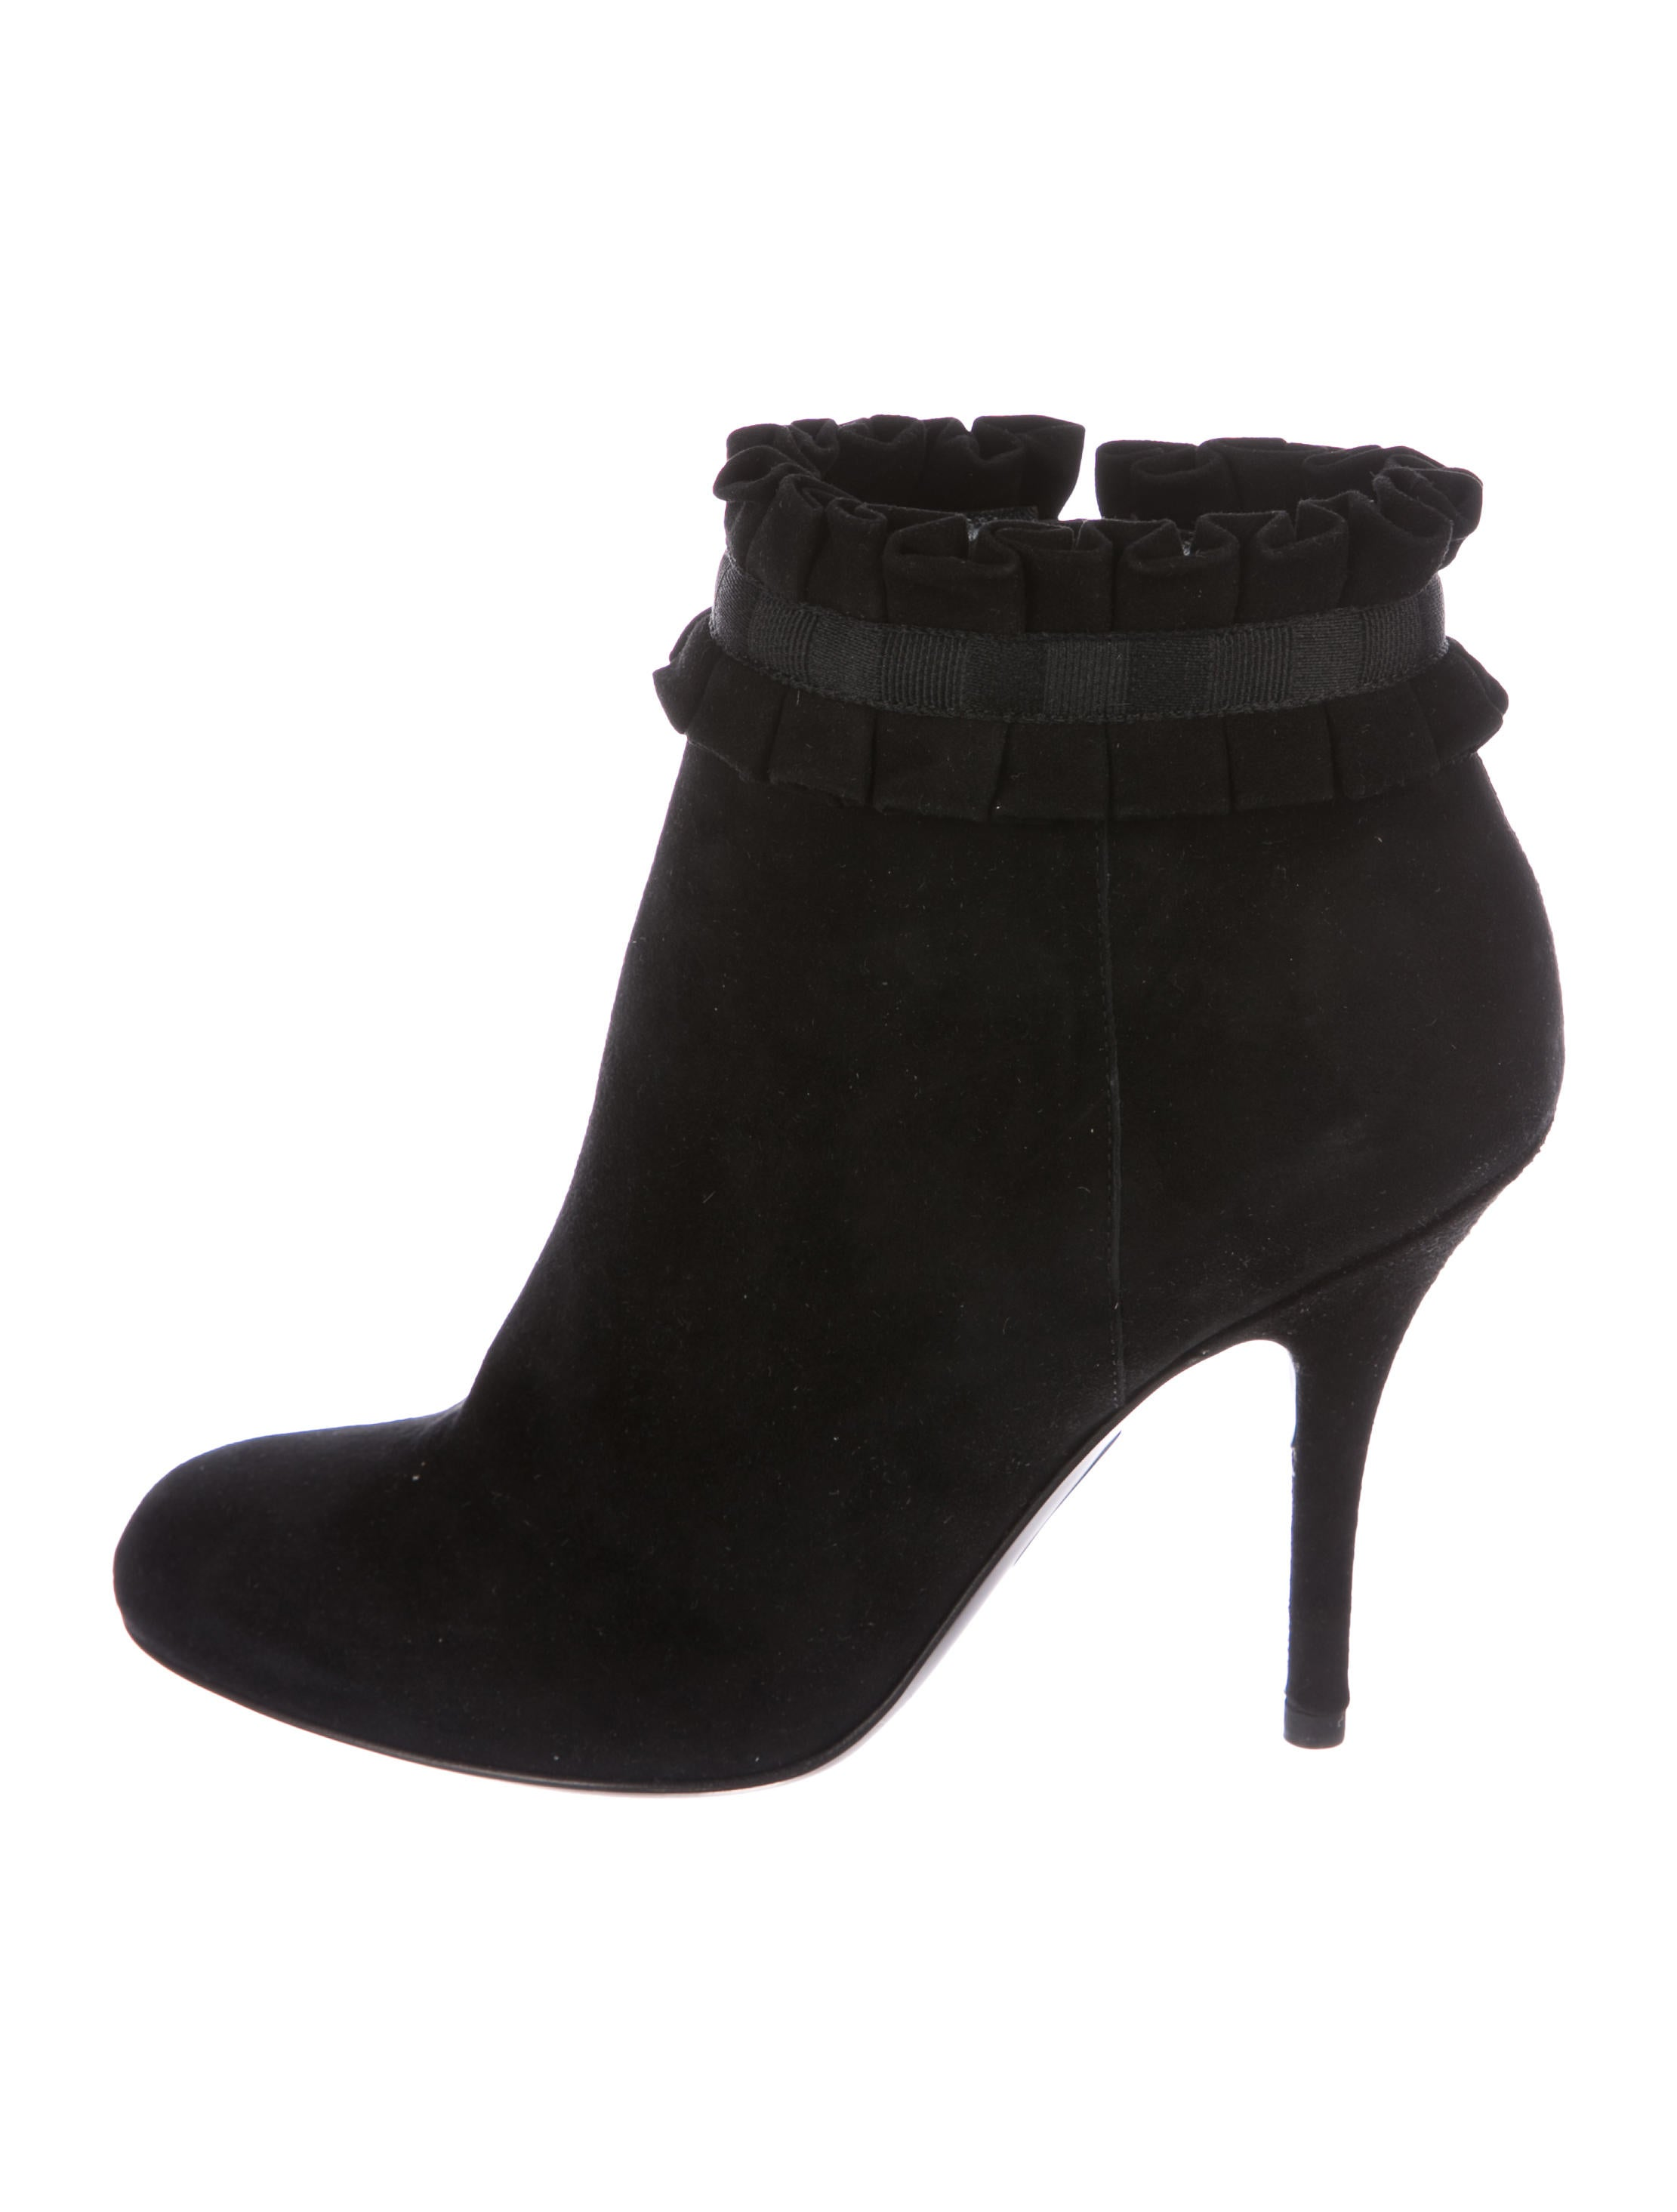 Sergio Rossi Suede Ruffle Booties outlet for cheap buy cheap online AgSfjz8